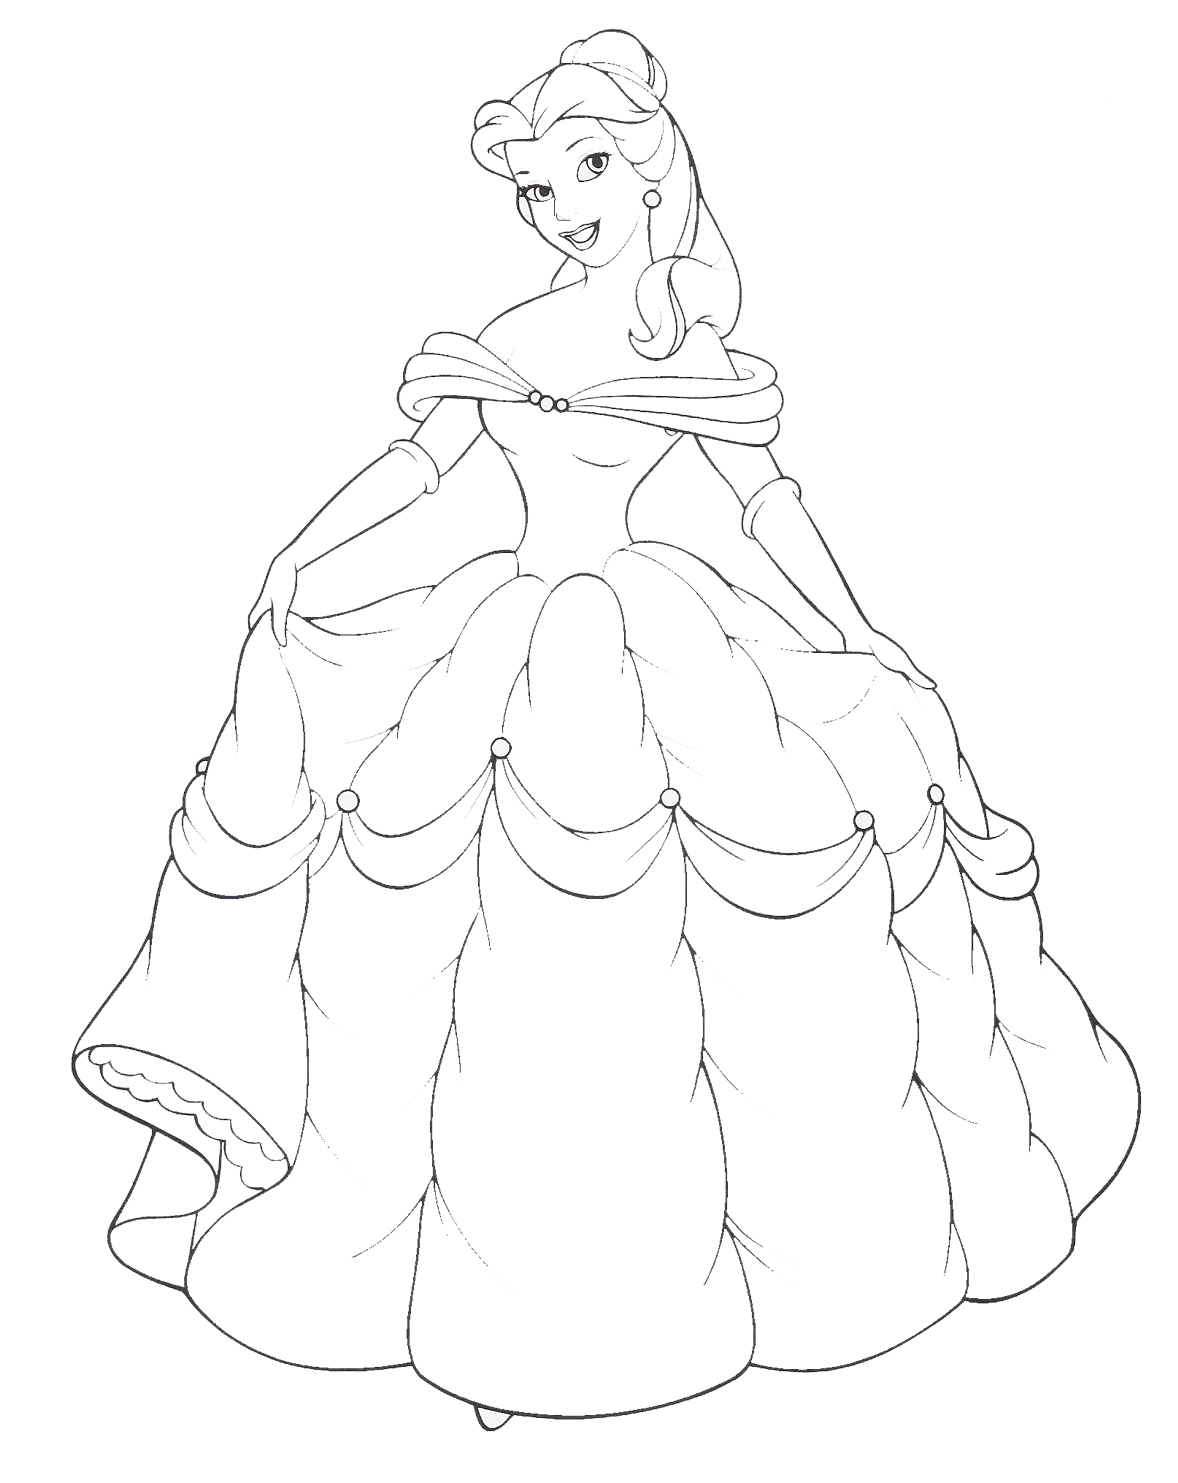 Coloring Book Pages Princess : Disney princess belle and her gown coloring sheet